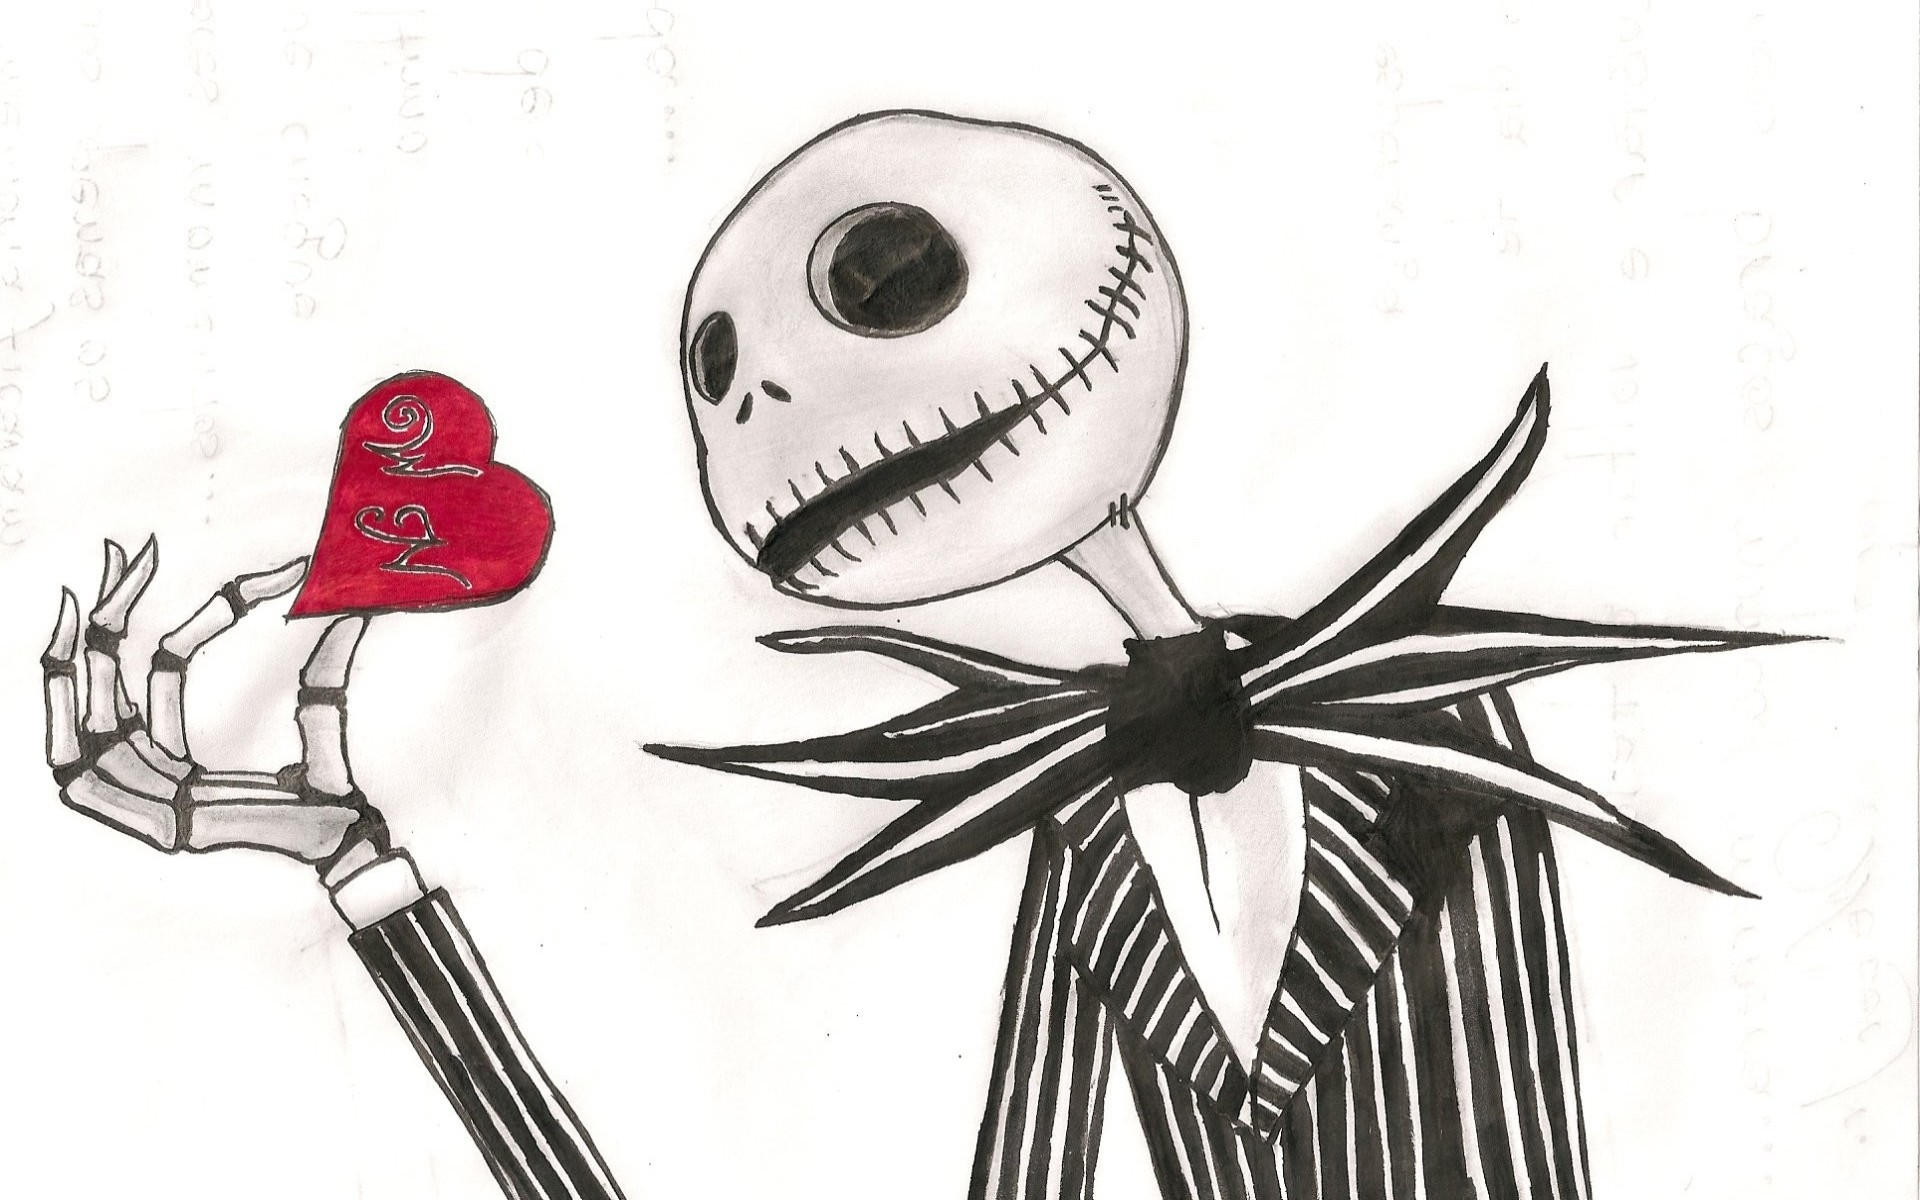 Jack skellington the nightmare before christmas dark skull love romance  mood art wallpaper | | 28354 | WallpaperUP